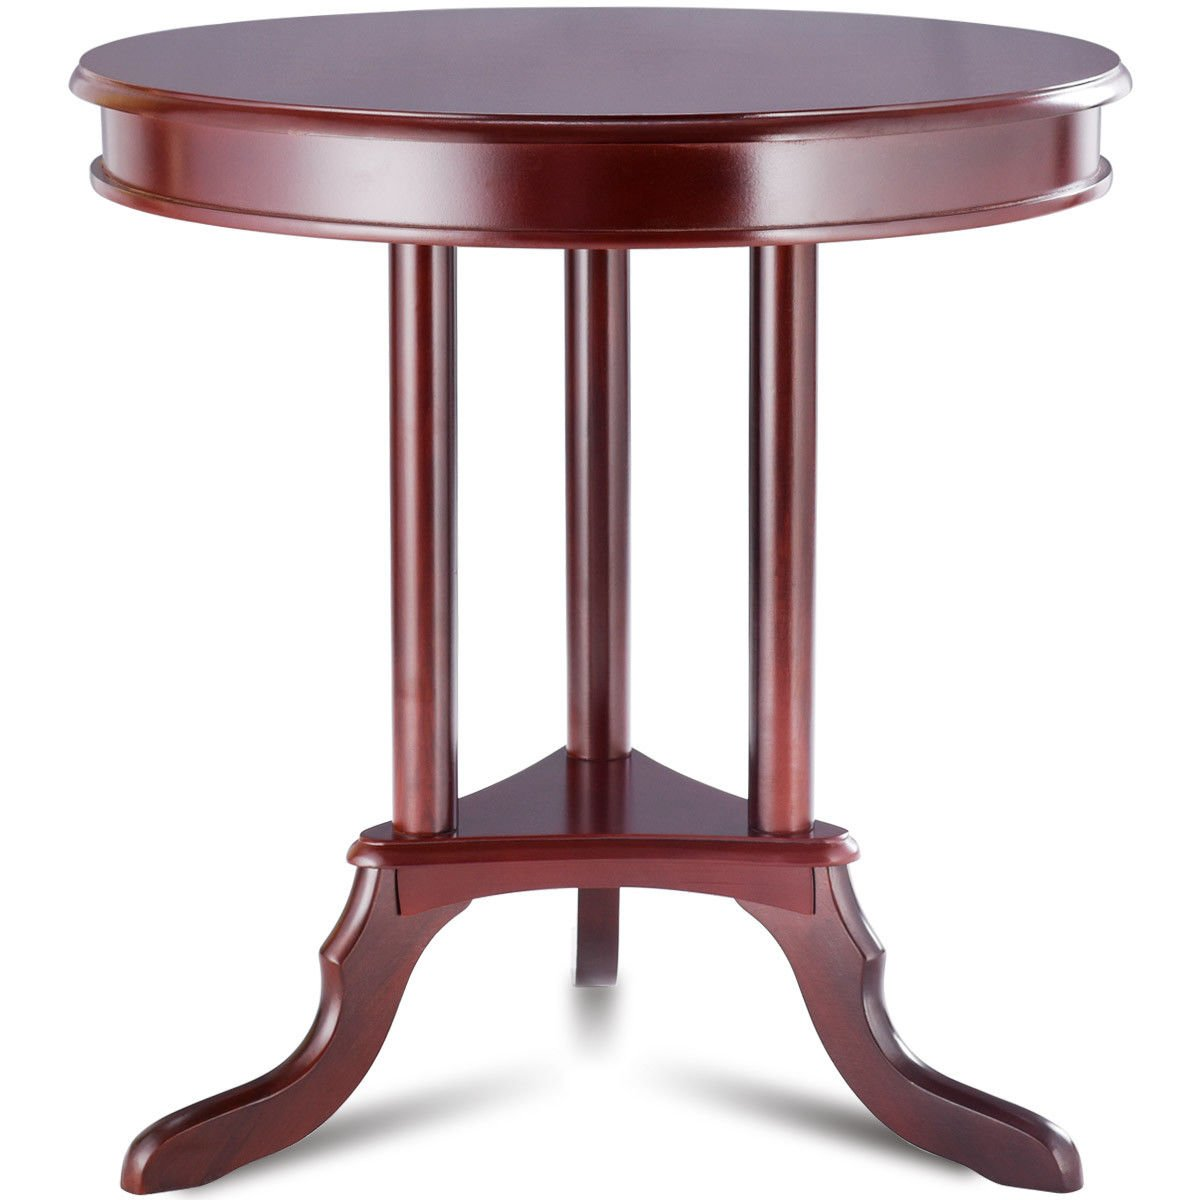 giantex round accent table end side home shelf furnishing slanted legs kitchen dining farm and chairs pottery barn patio furniture small outside metal outdoor antique console